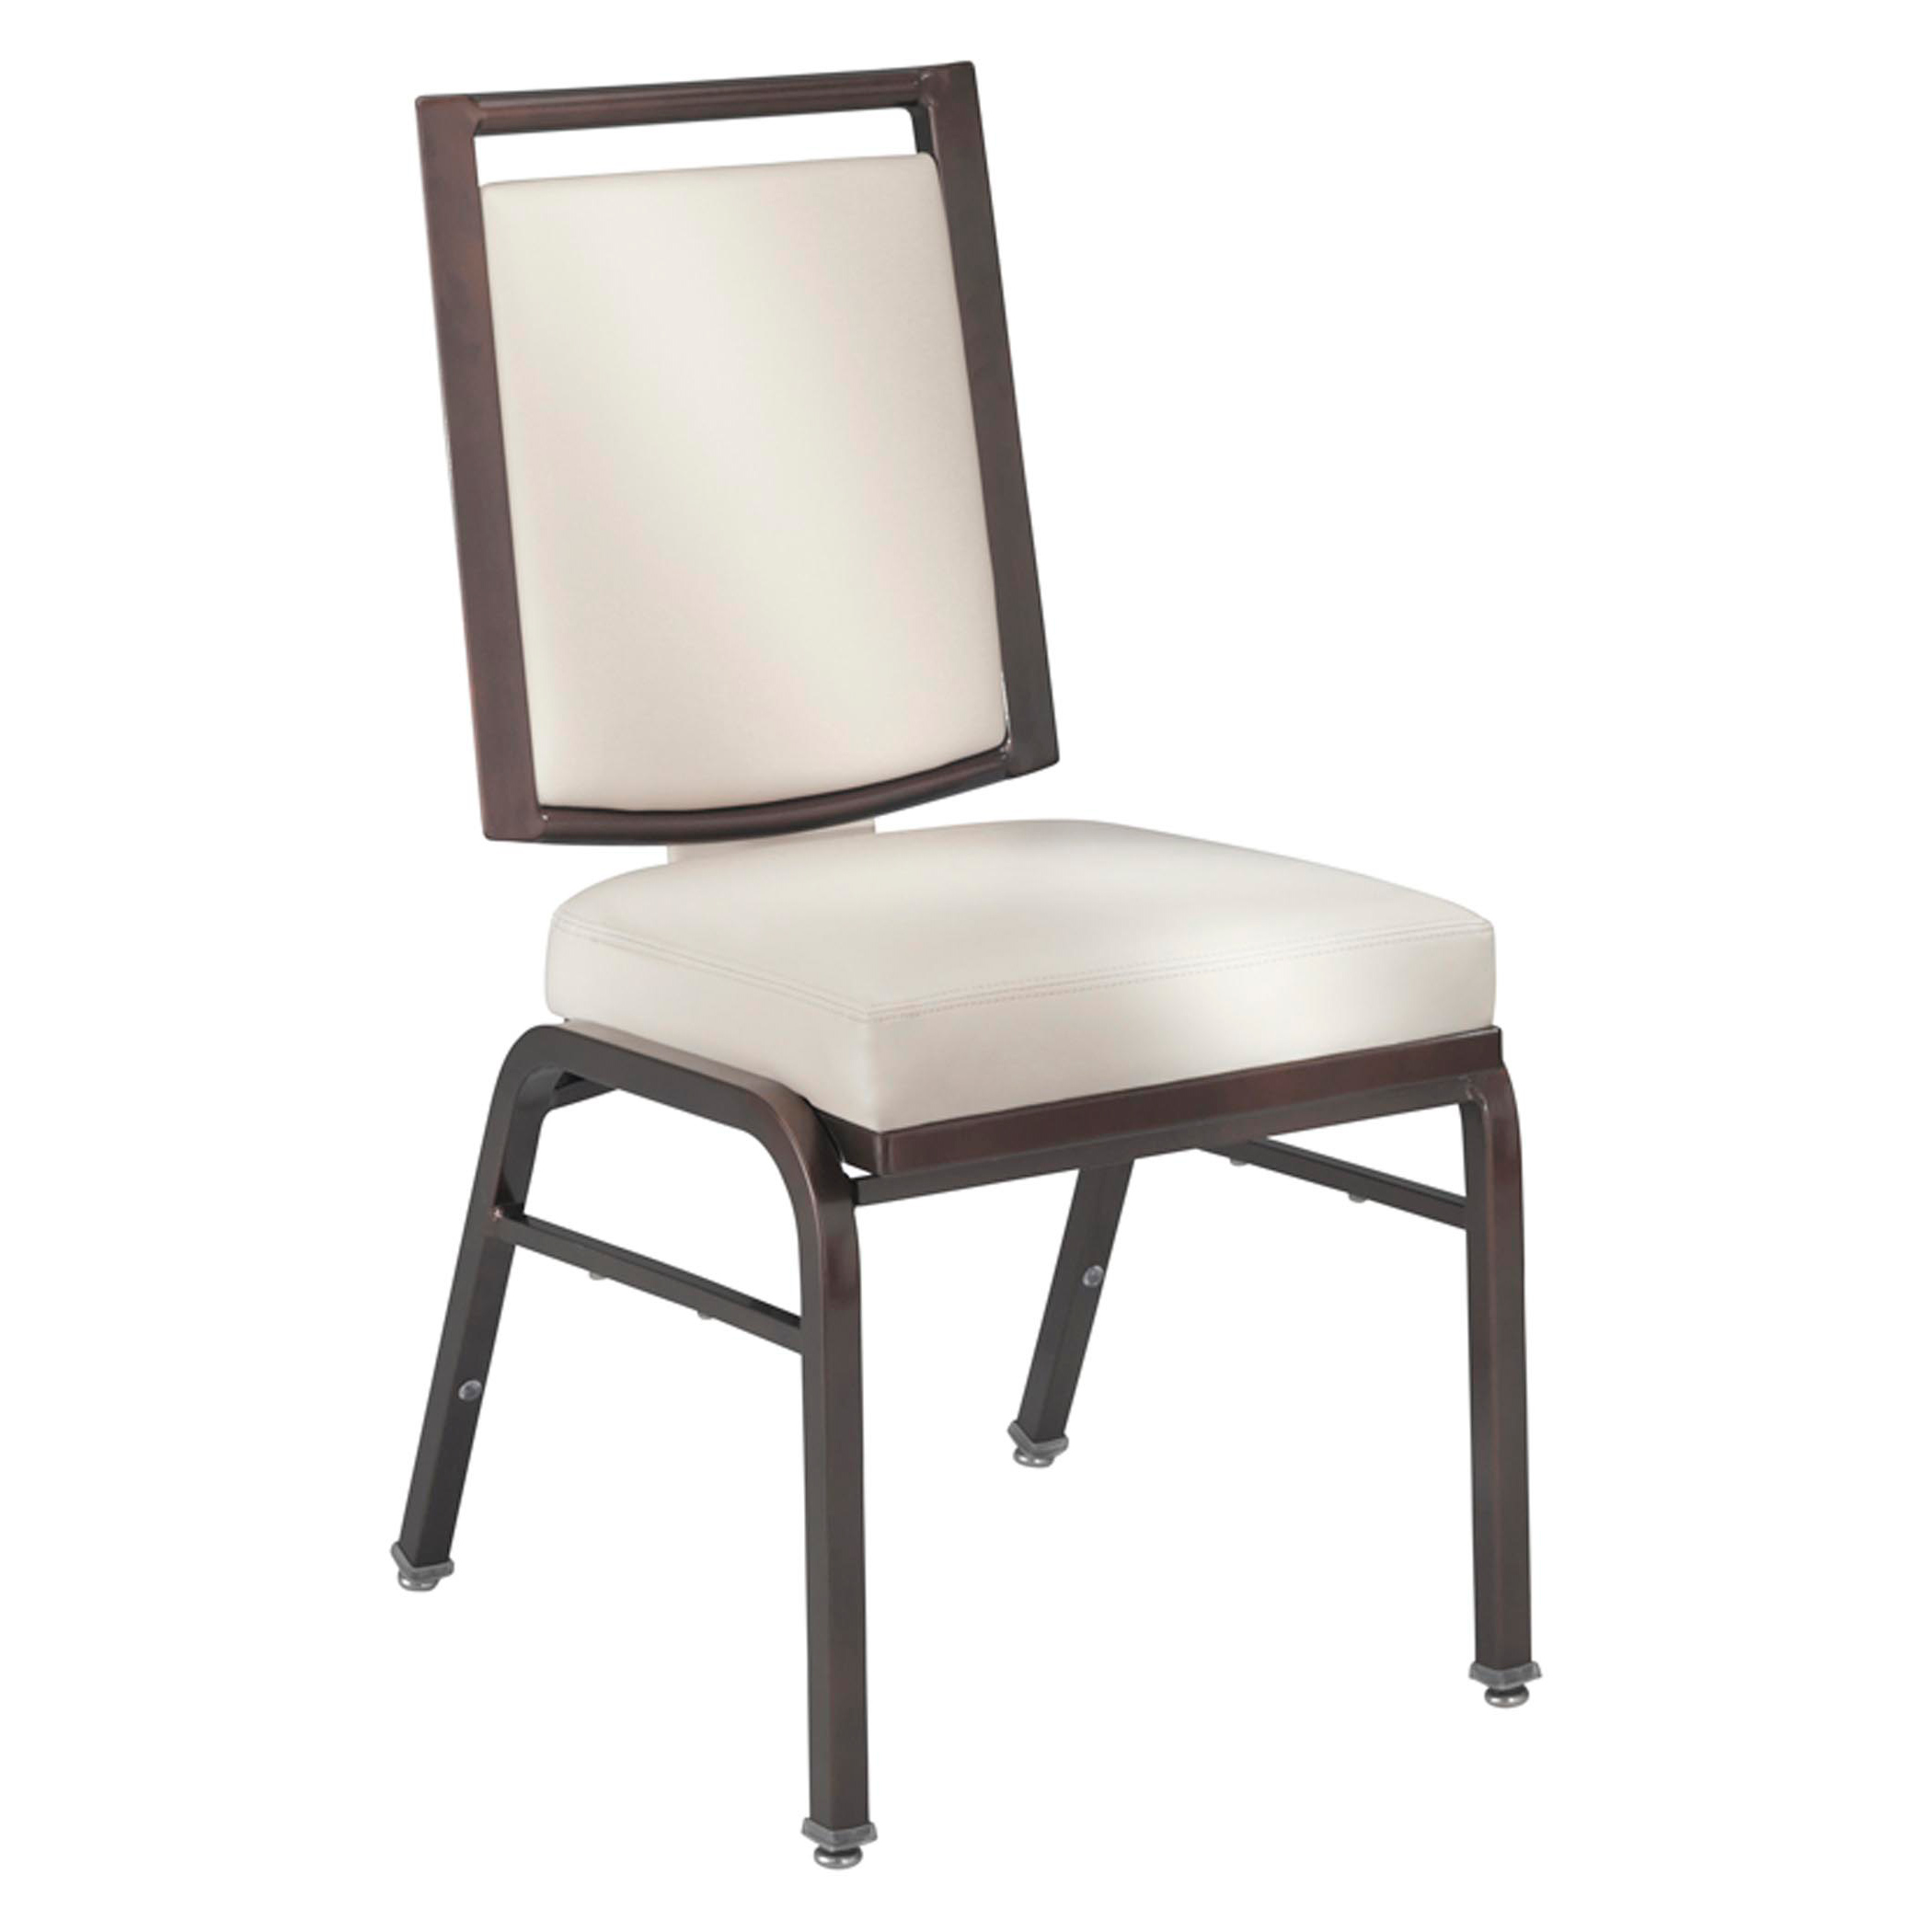 be silver black product weddings hire banqueting p chairs and event banquet chair back